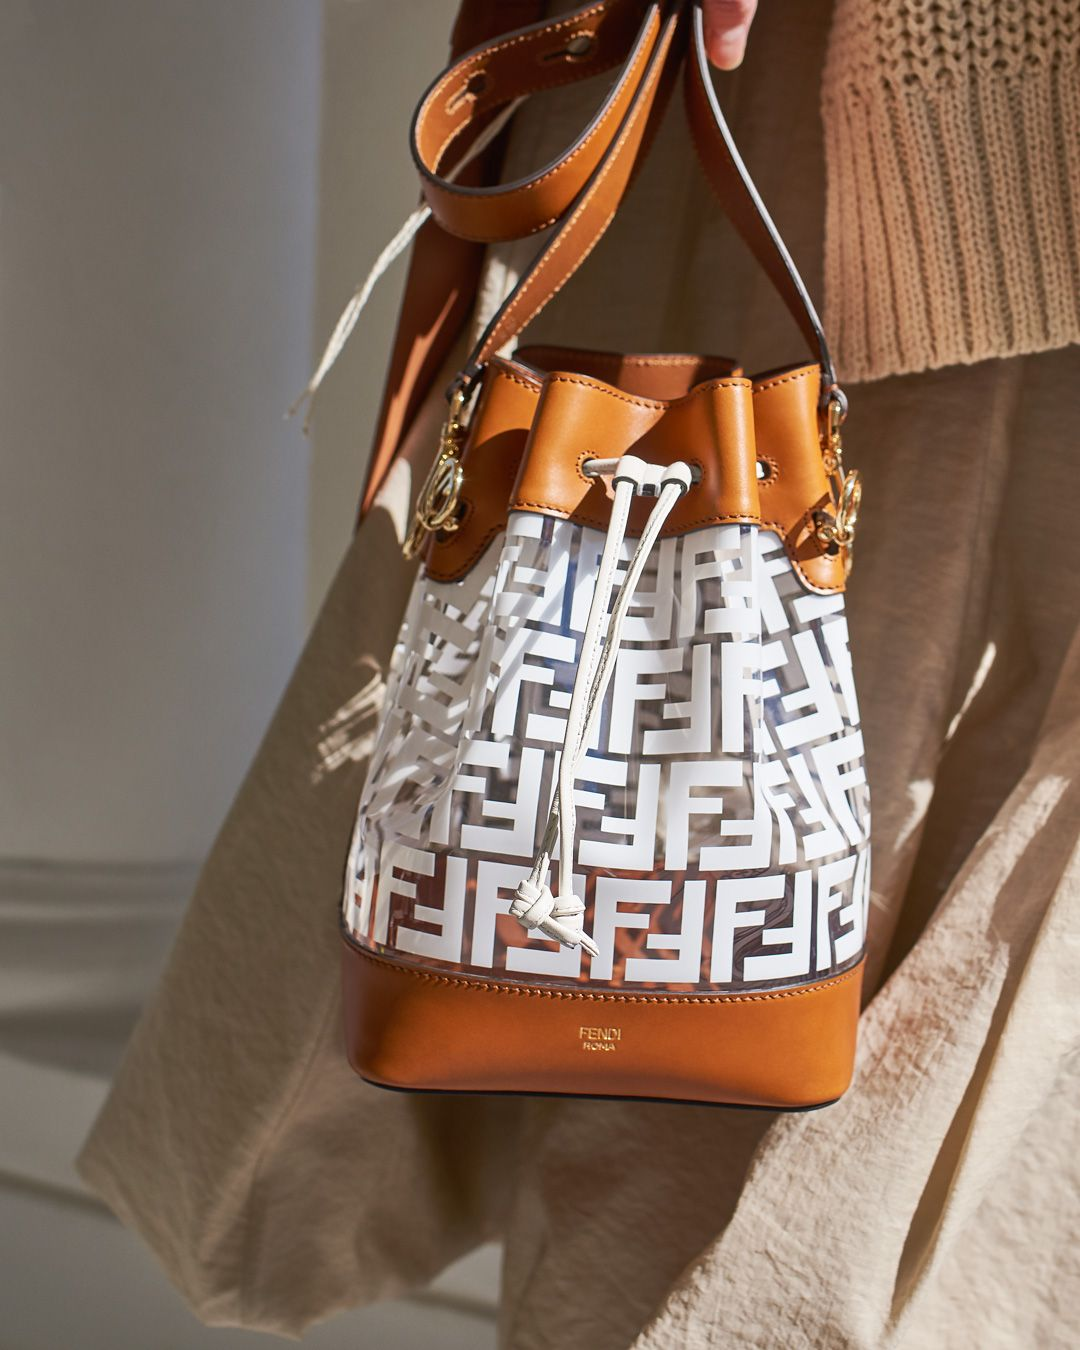 80bb3336b86 This treasure of a bag has us falling in love with  fendi s FF monogram  print all over again. Shop the Mon Tresor bucket bag via the link.